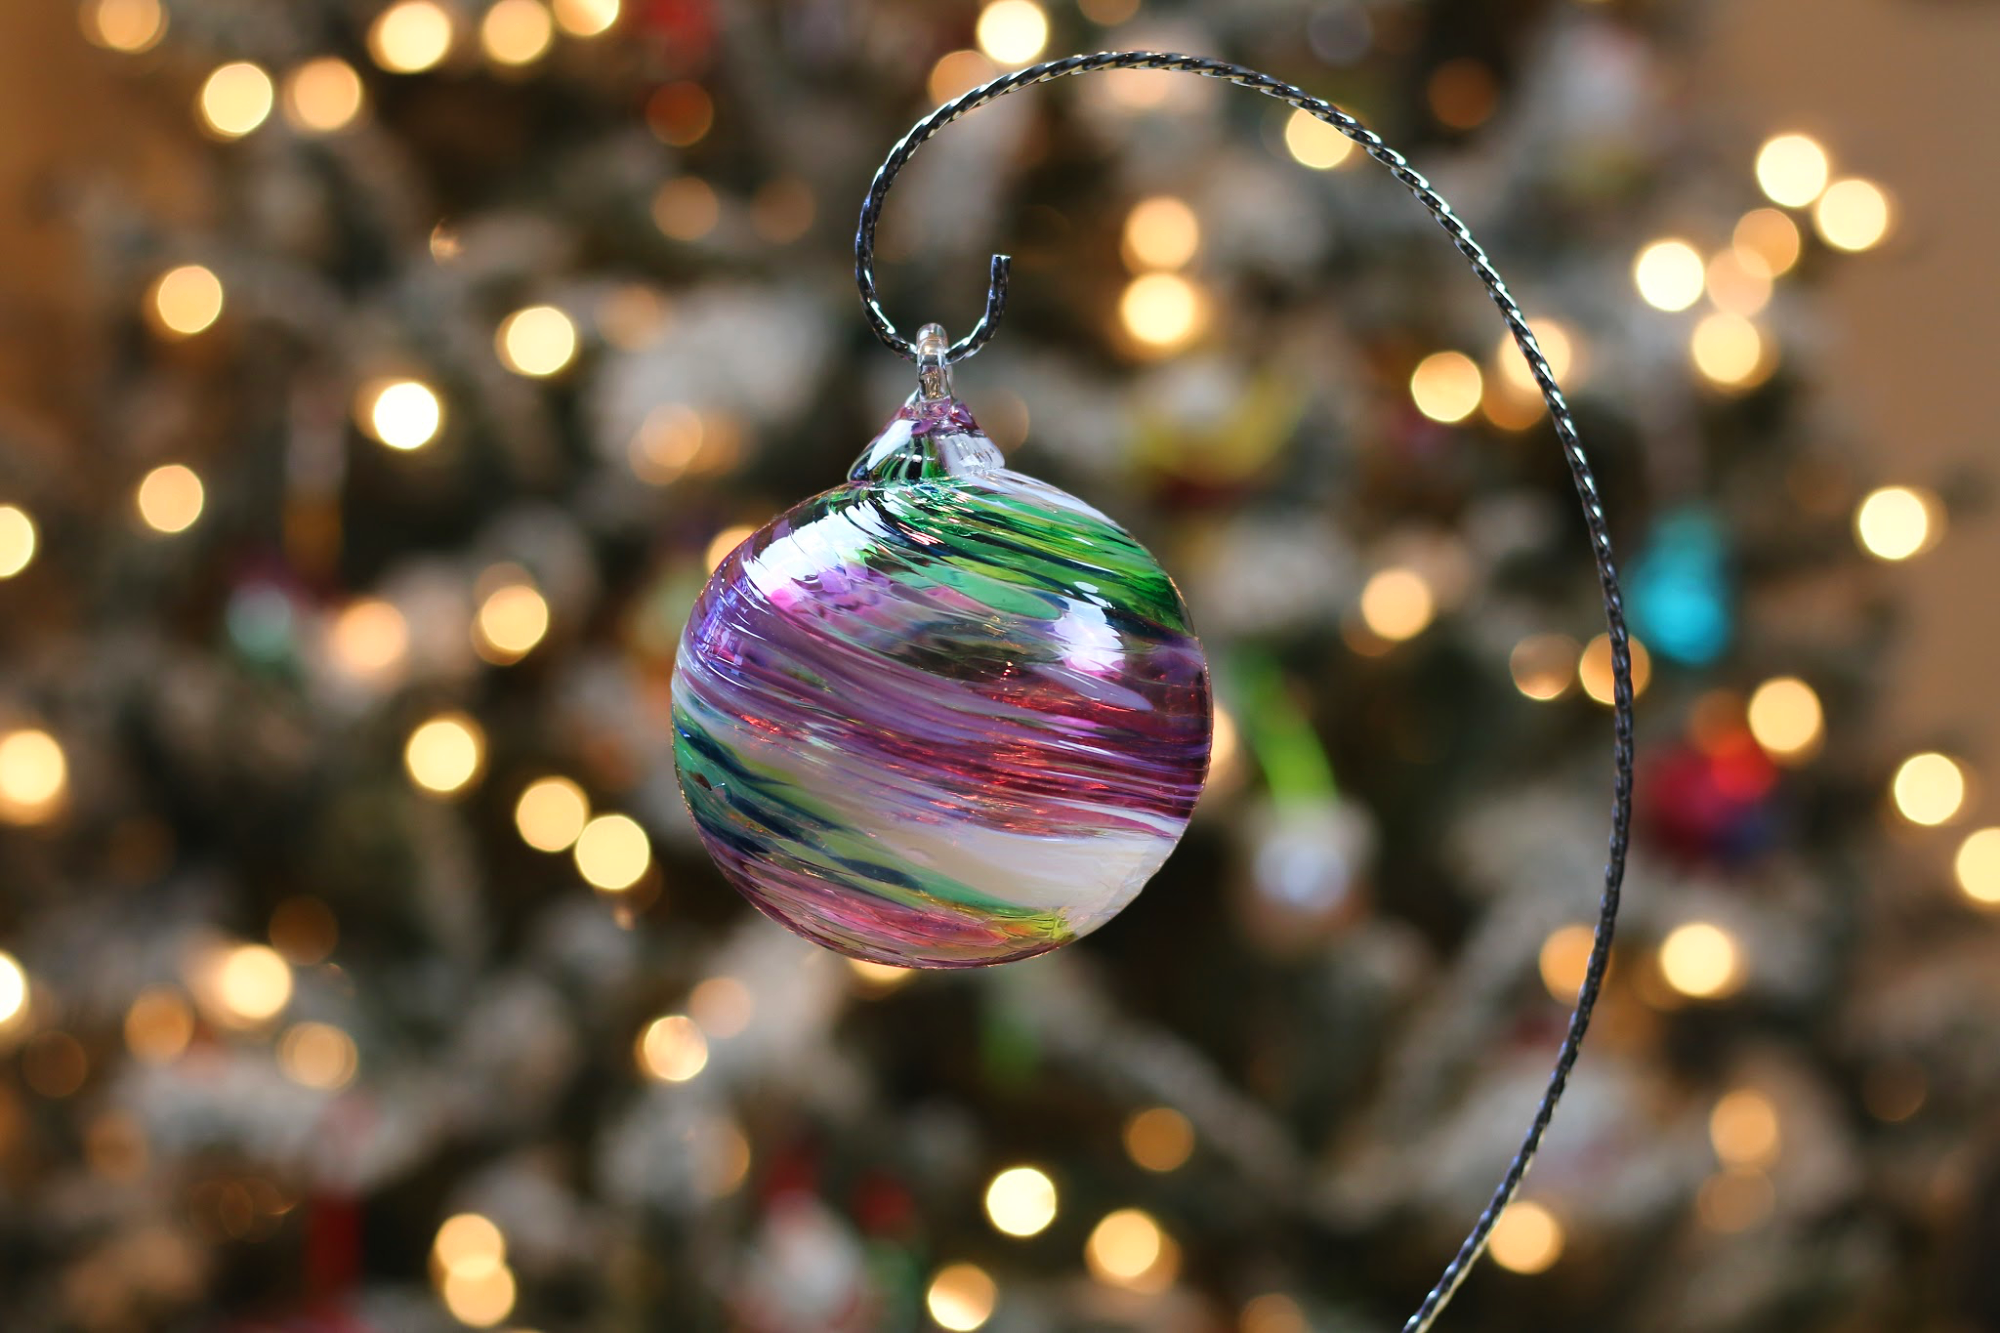 handmade glass Christmas ornament